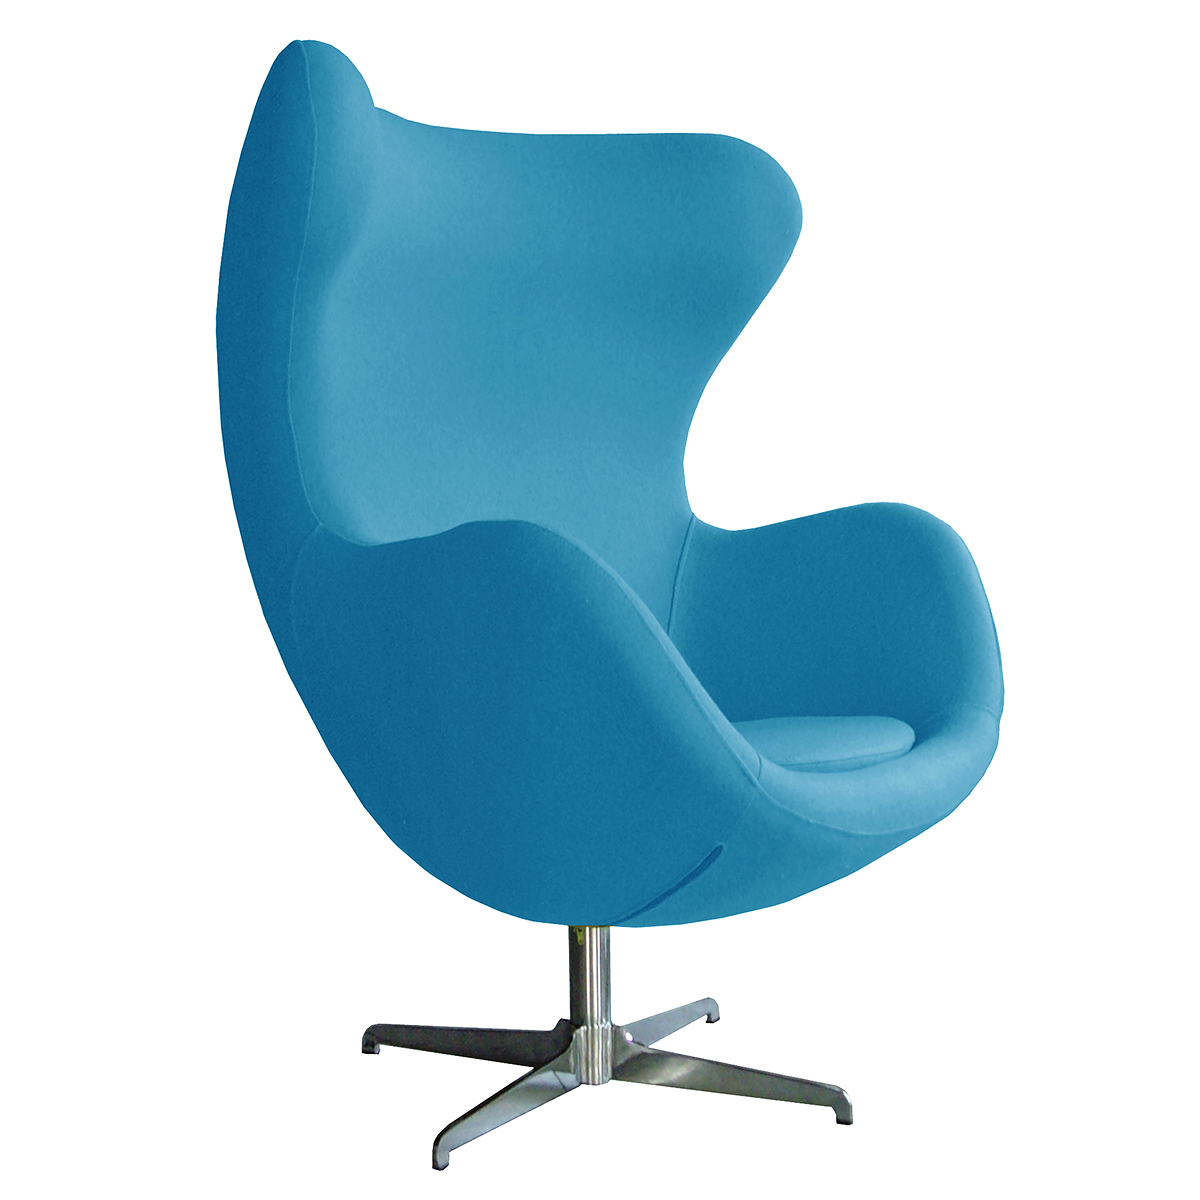 Retro Arne Jacobsen Inspired Designer Swivel Wool Egg